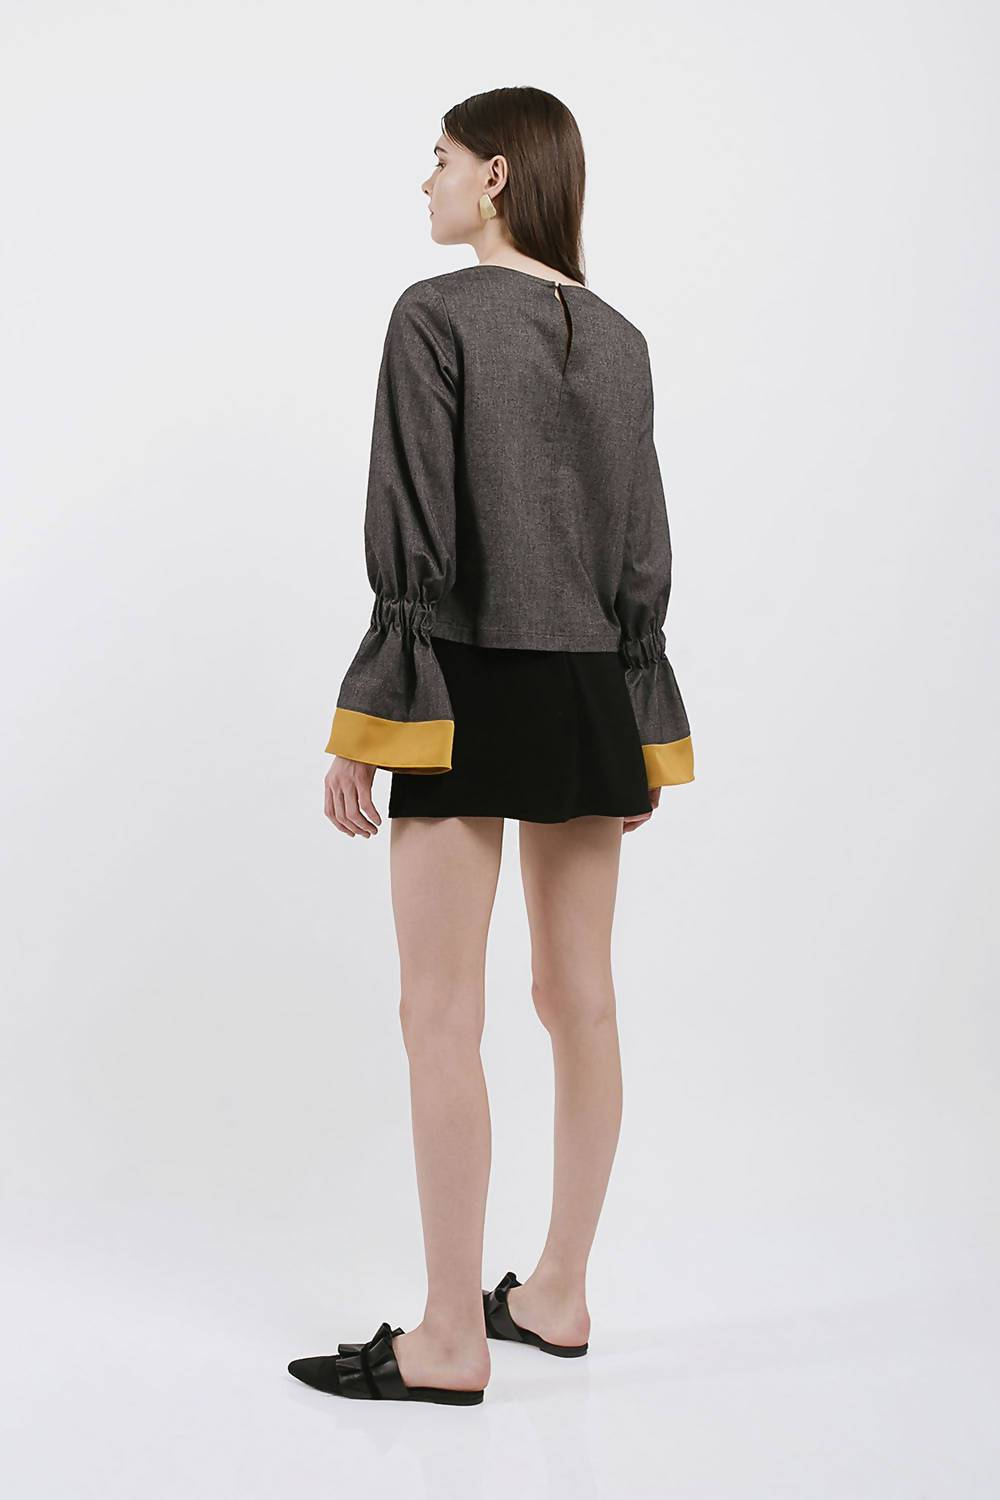 Frej Top in Charcoal